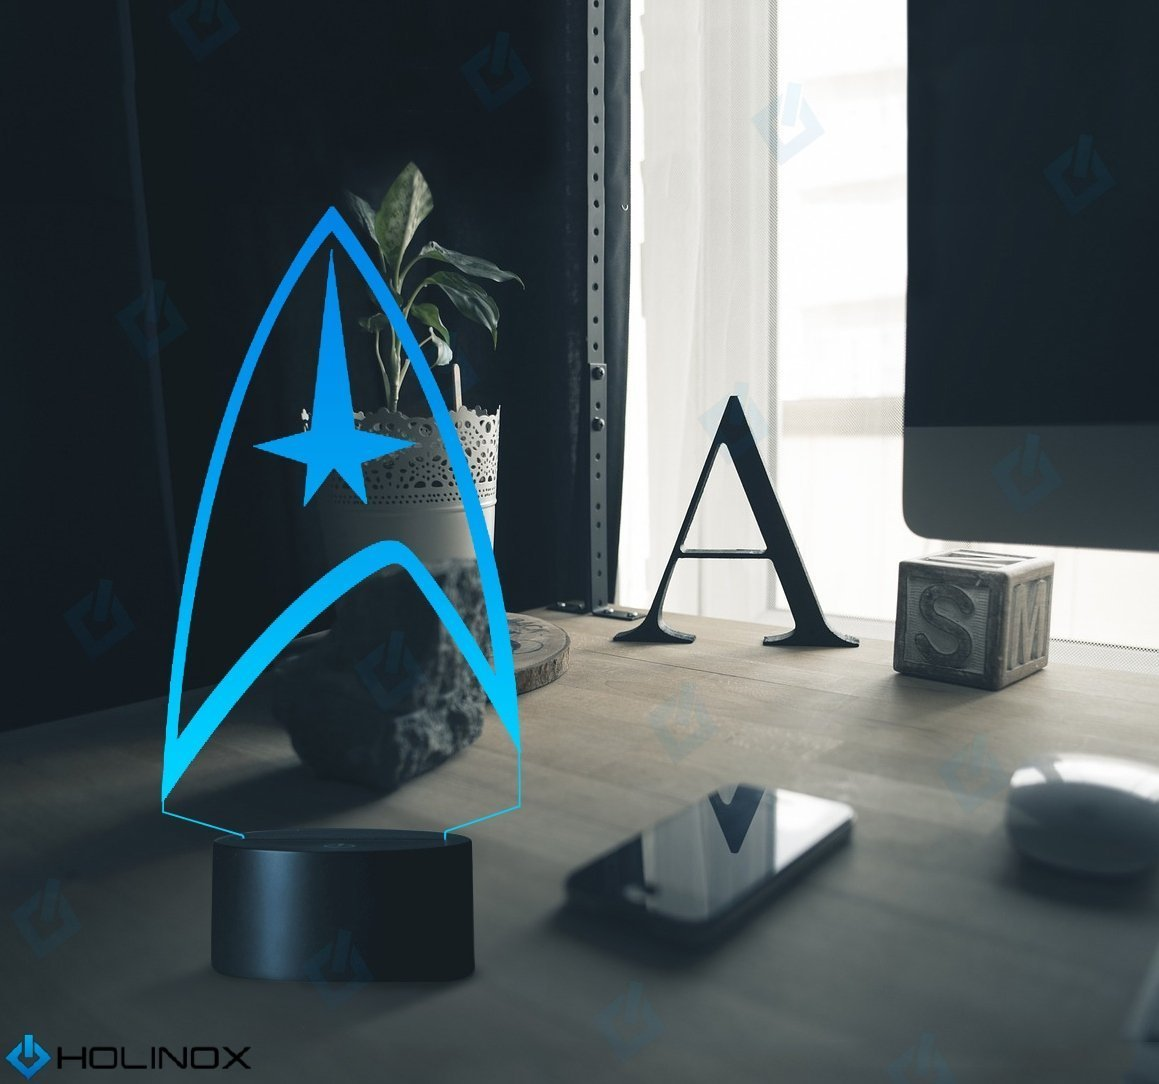 Star Trek Lighting Decor Gadget Lamp Awesome Gift (MT015) By Holinox